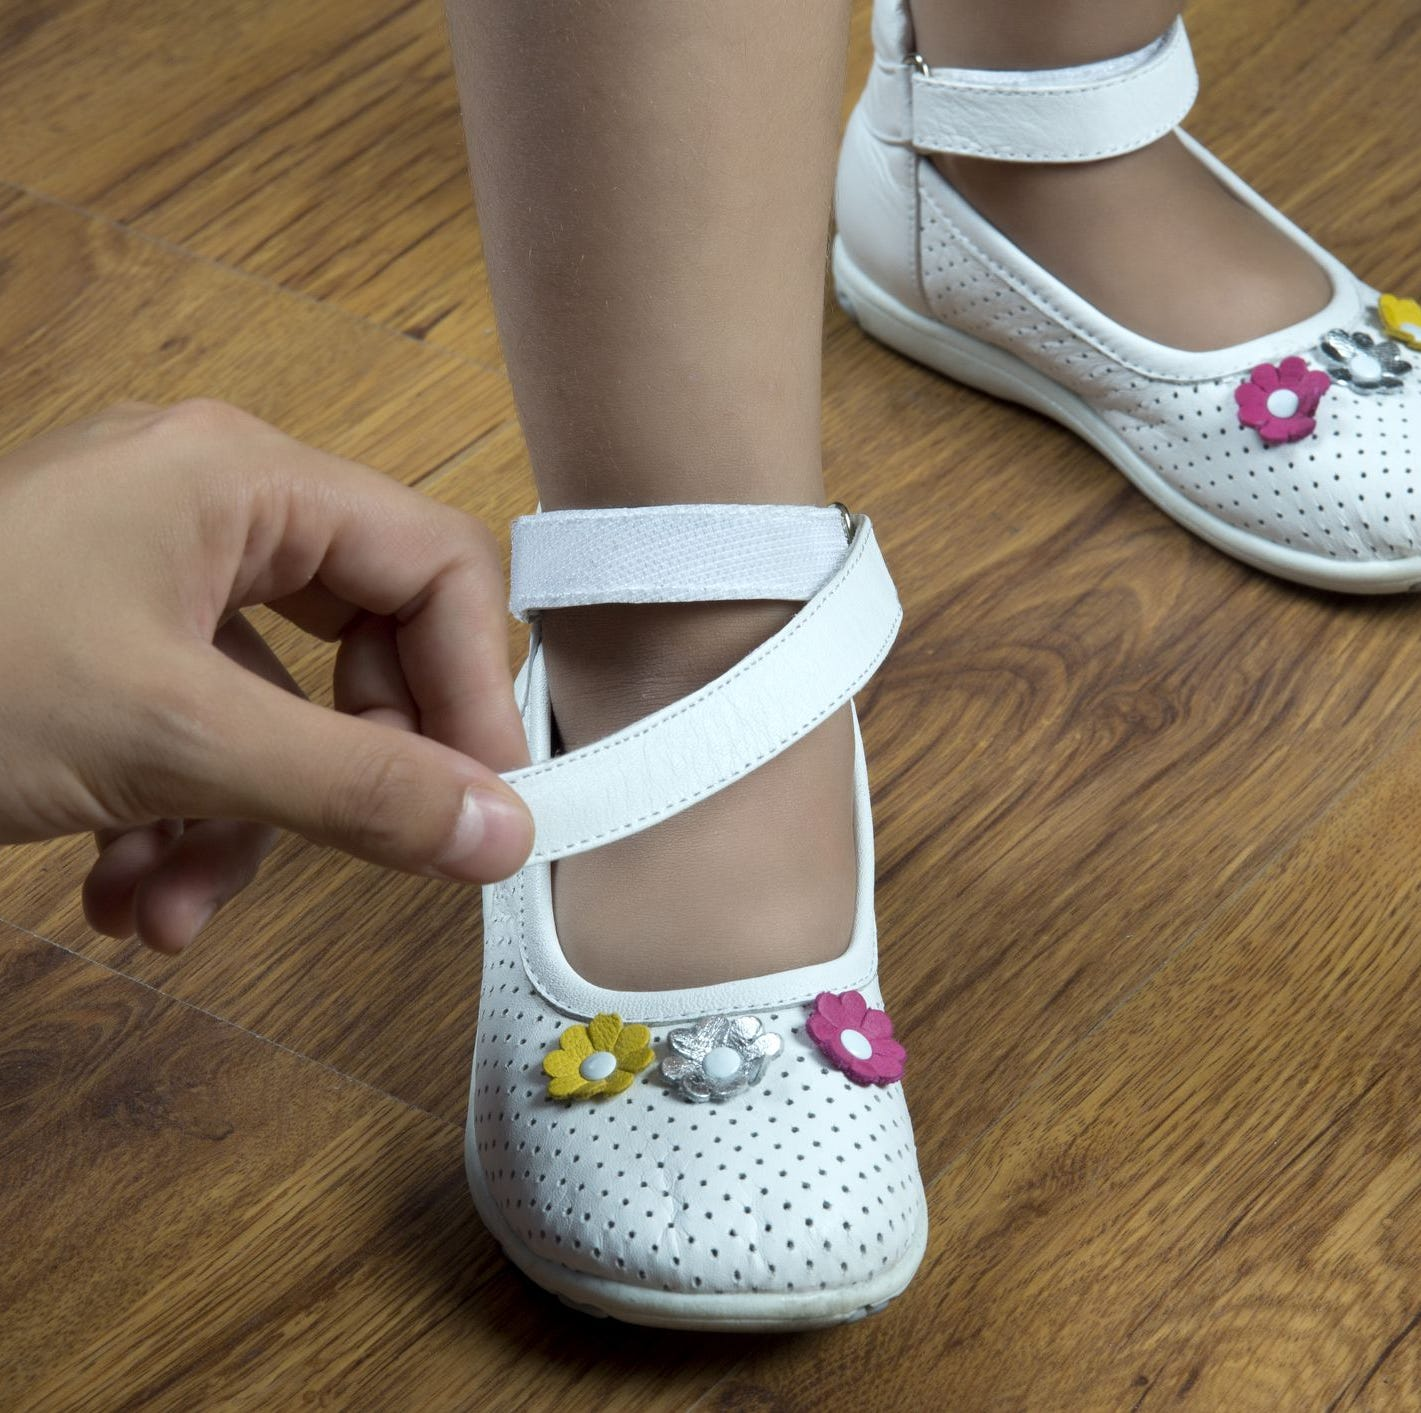 A 4-year-old girl was hospitalized with sepsis after trying on new school shoes.